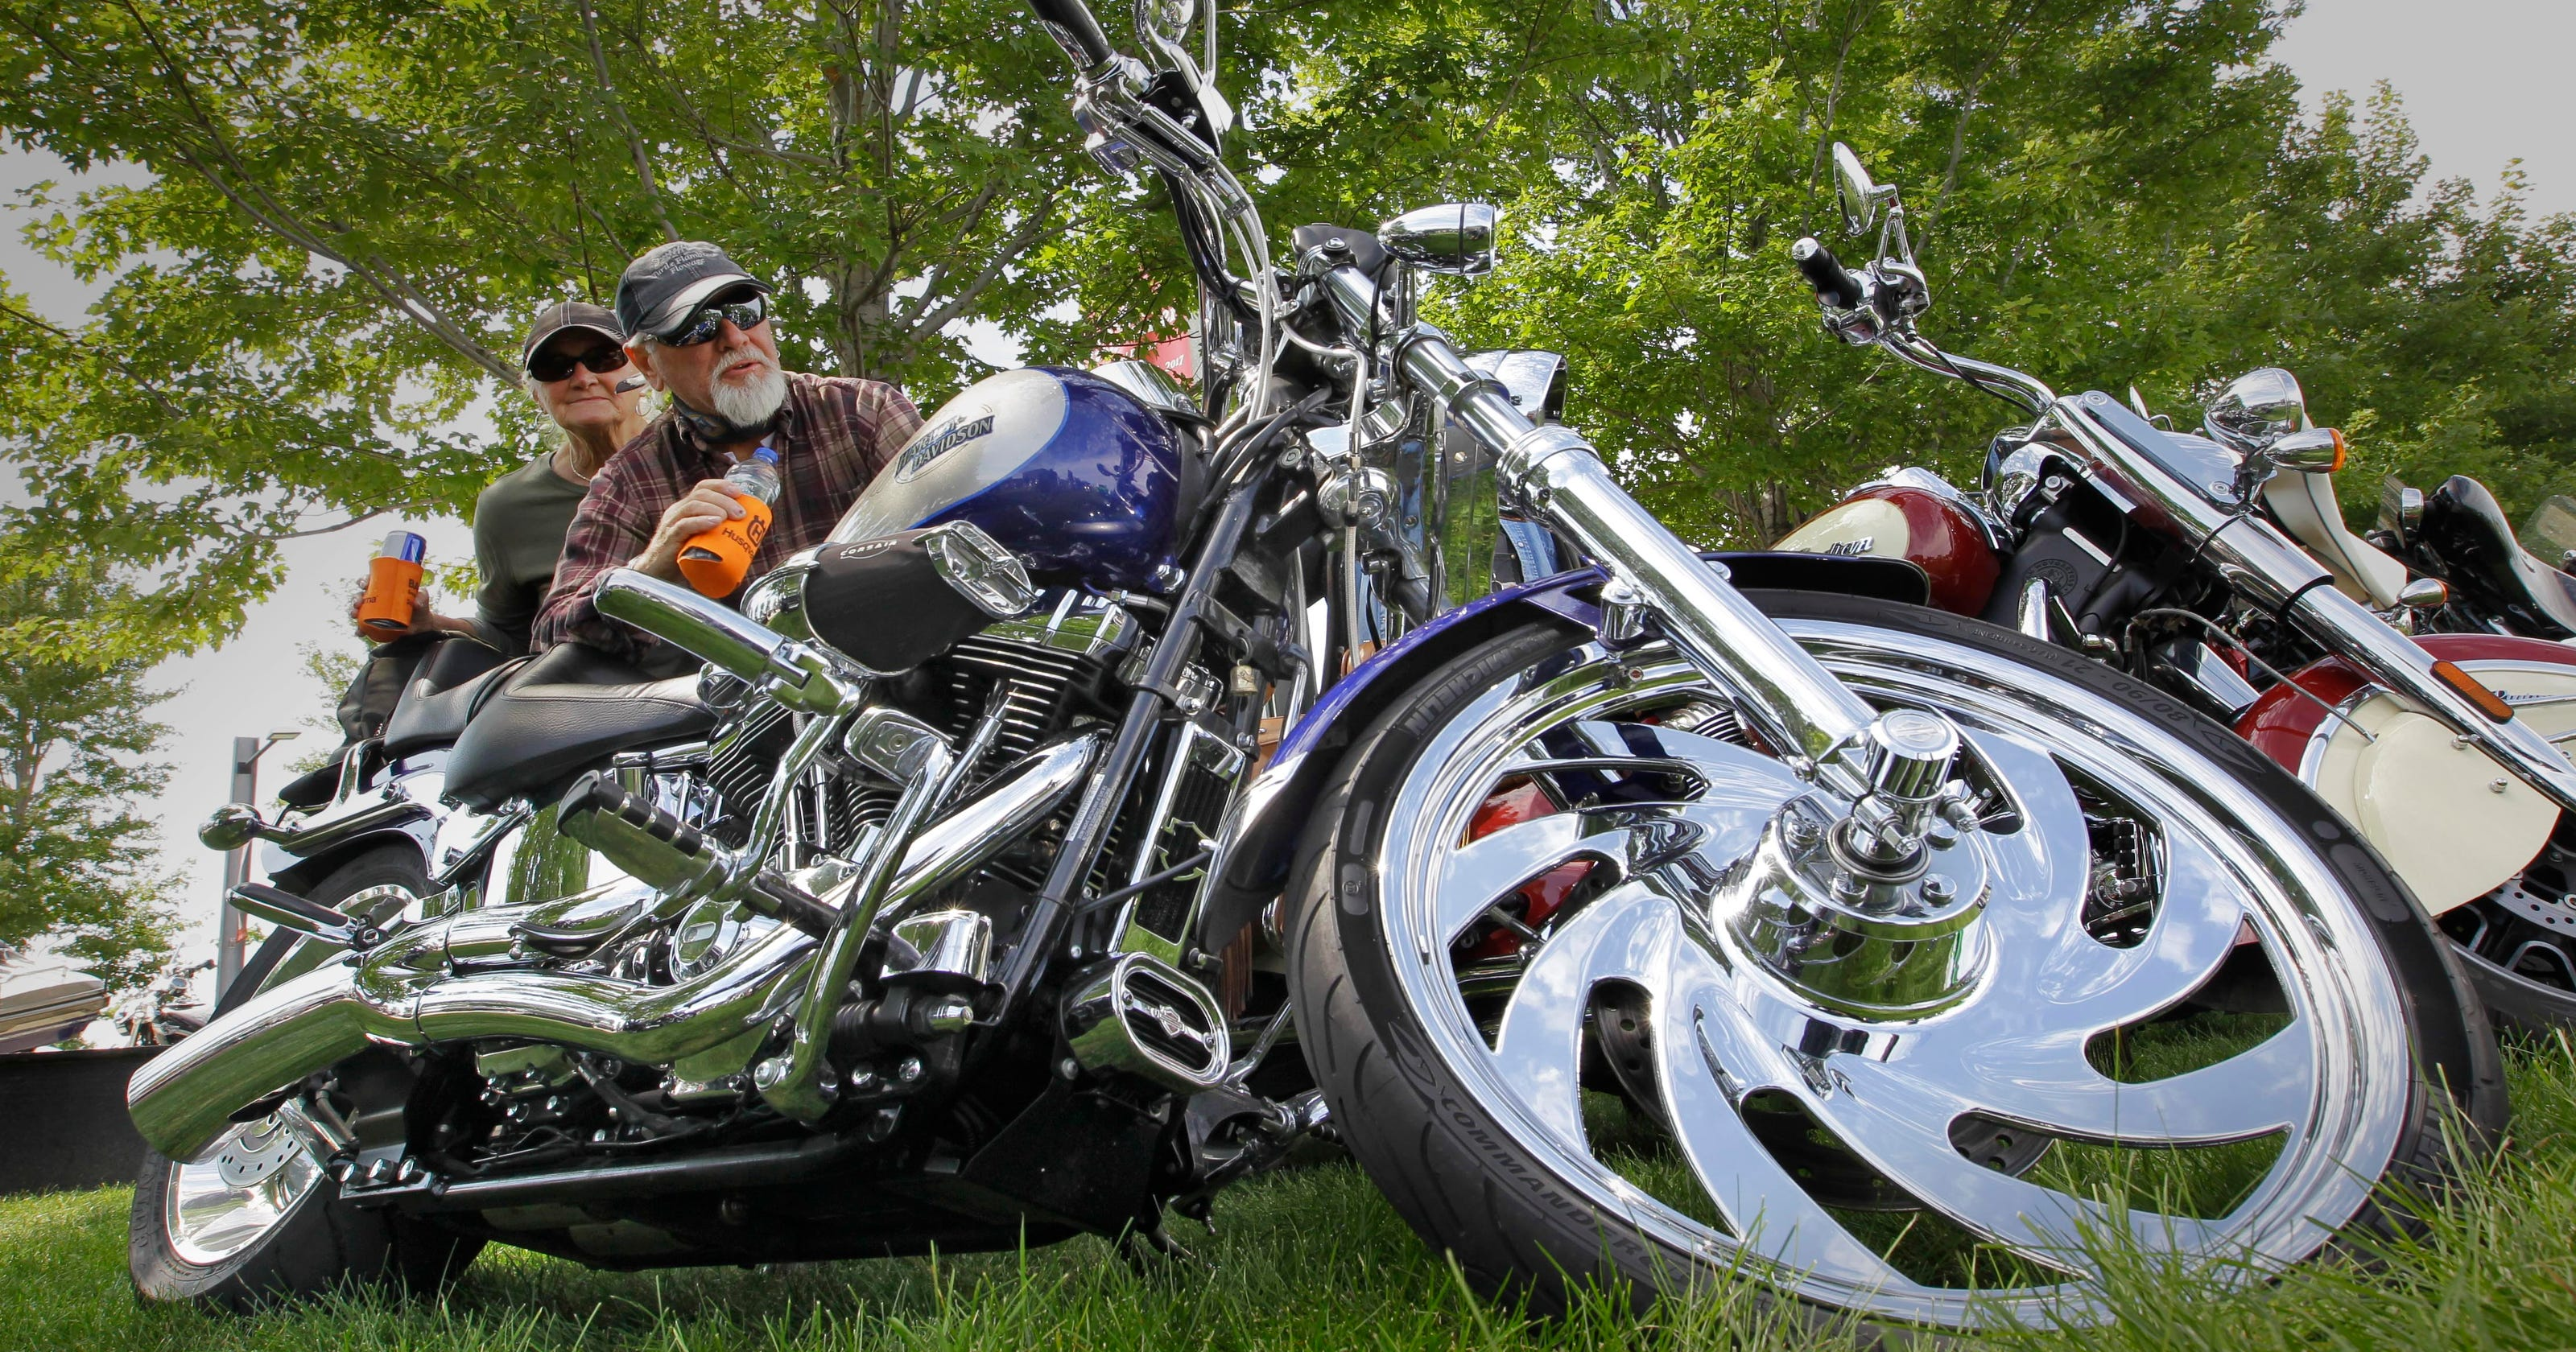 Harley-Davidsons are classic Americana with foreign-sourced parts